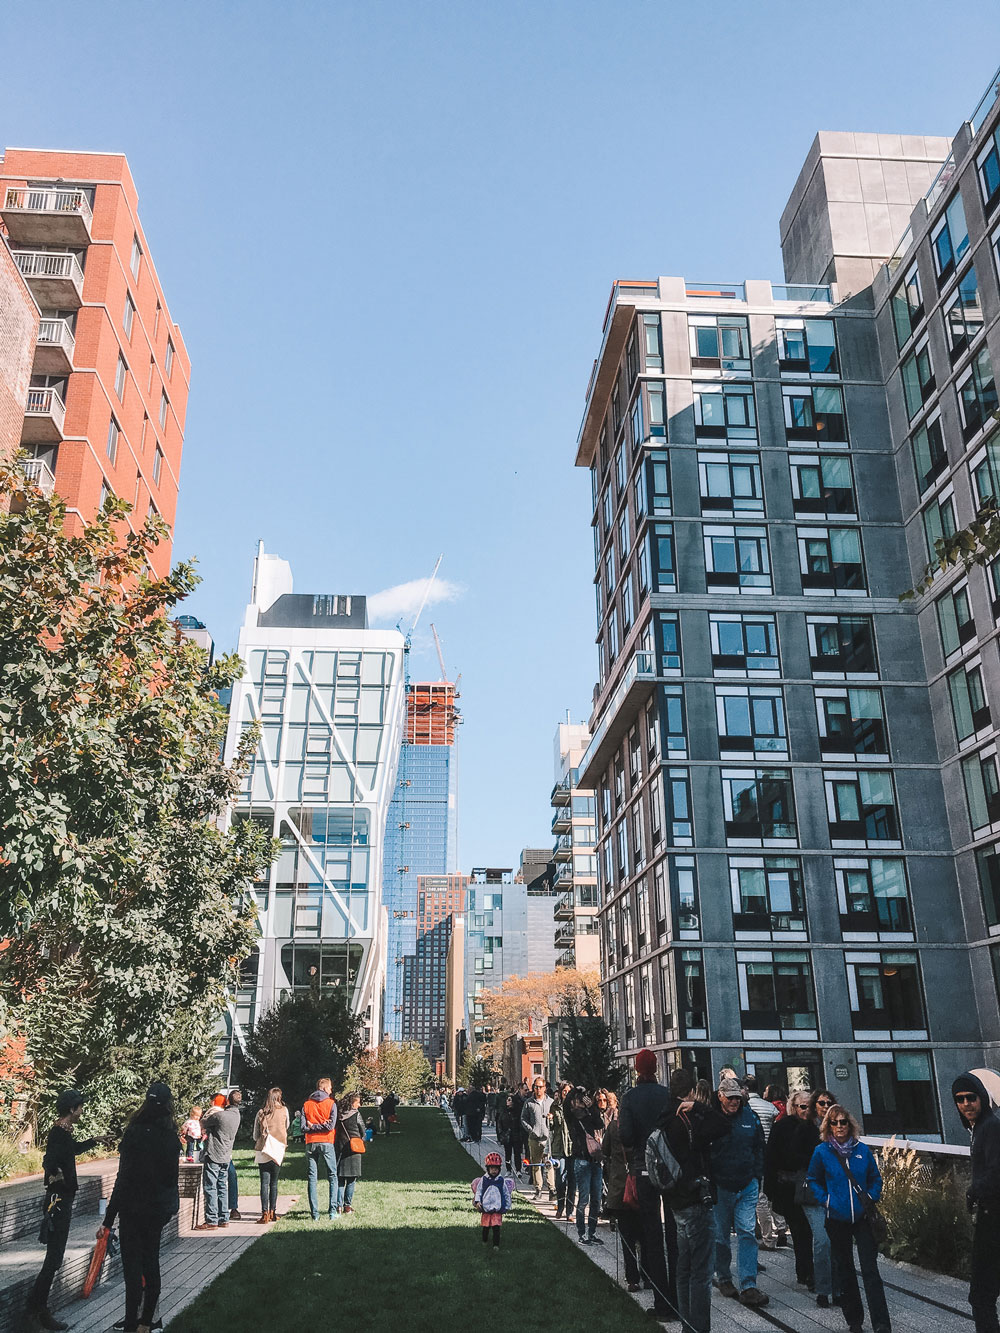 Most Instagrammable Spots in NYC: The High Line